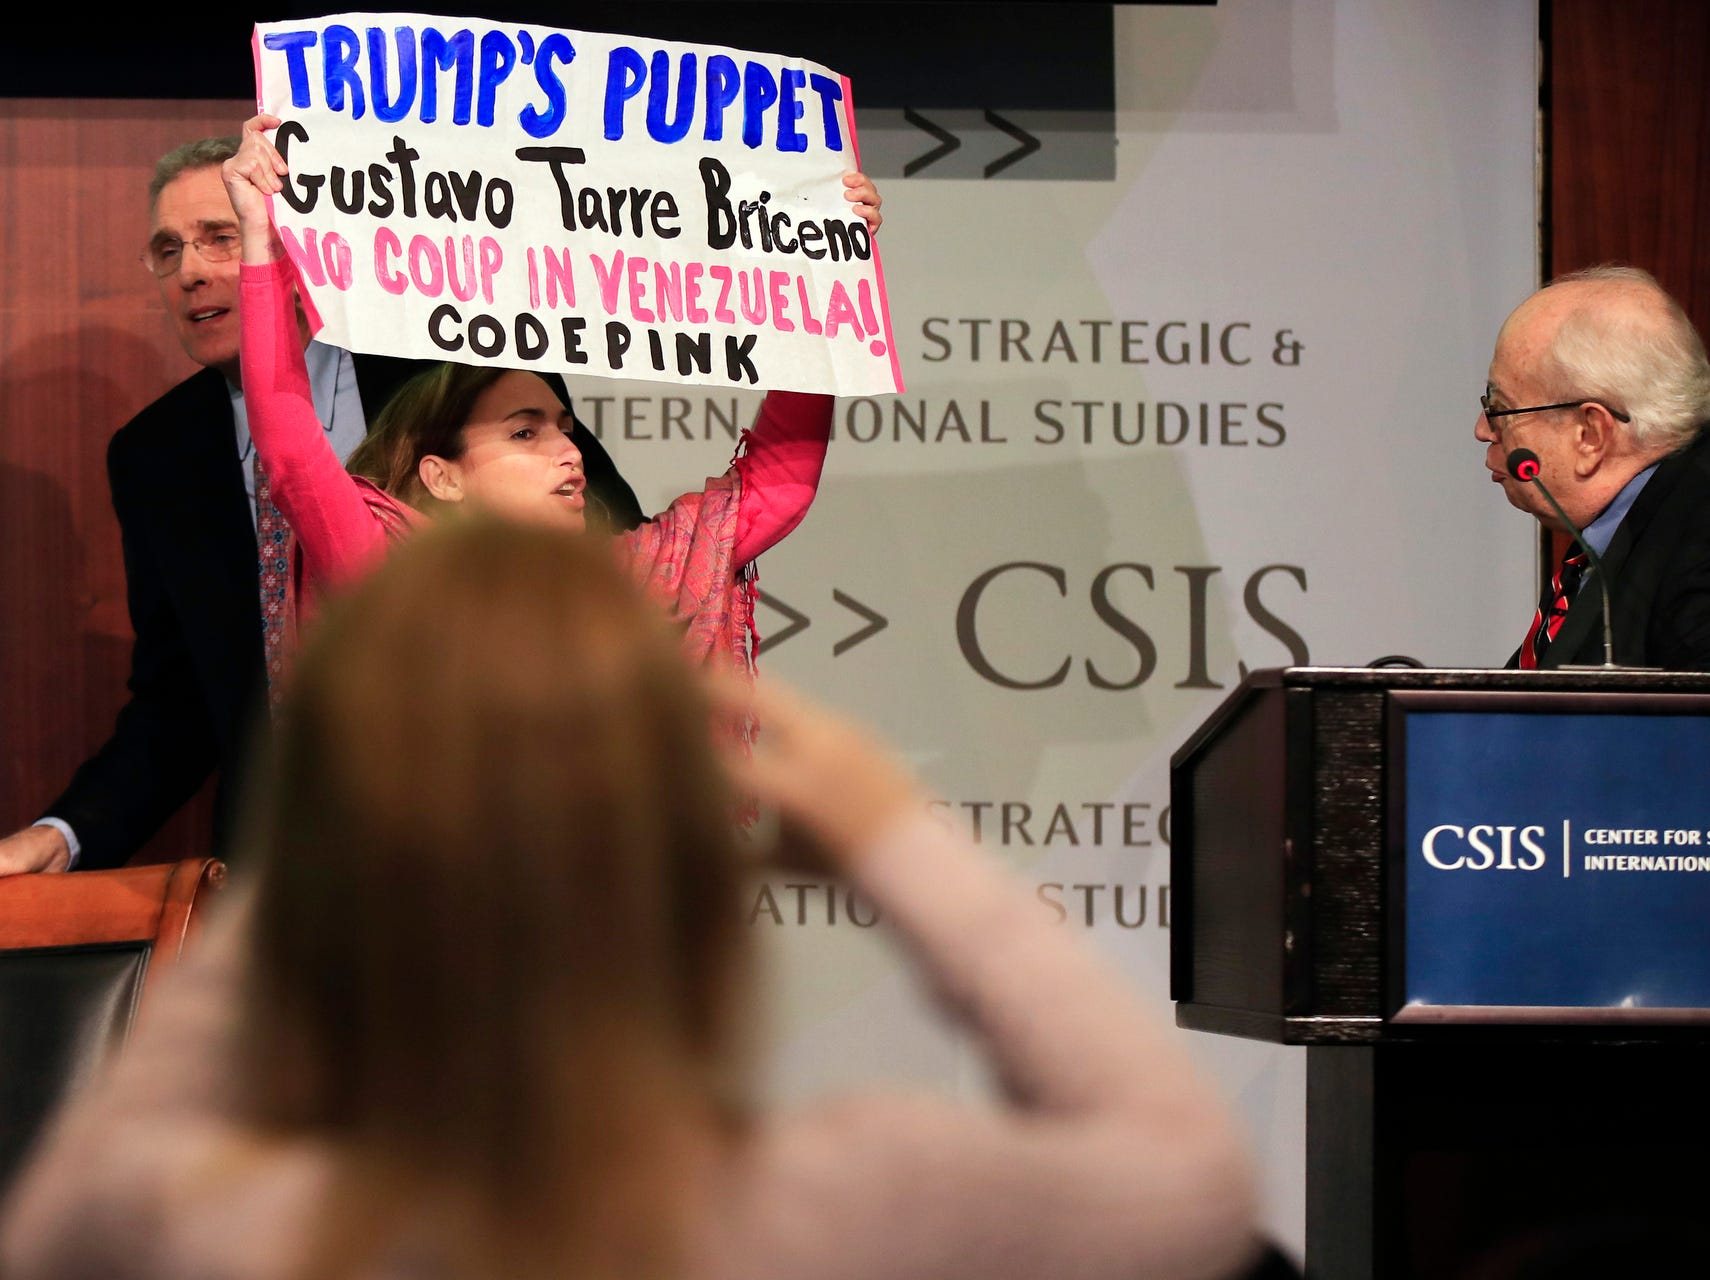 Gustavo Tarre, designated Venezuelan ambassador to the Organization of American States, appointed by Venezuelan opposition leader Juan Guaido, right, looks at a protestor wave a banner on stage during a panel discussion at the Center for Strategic and International Studies in Washington, on Tuesday,.